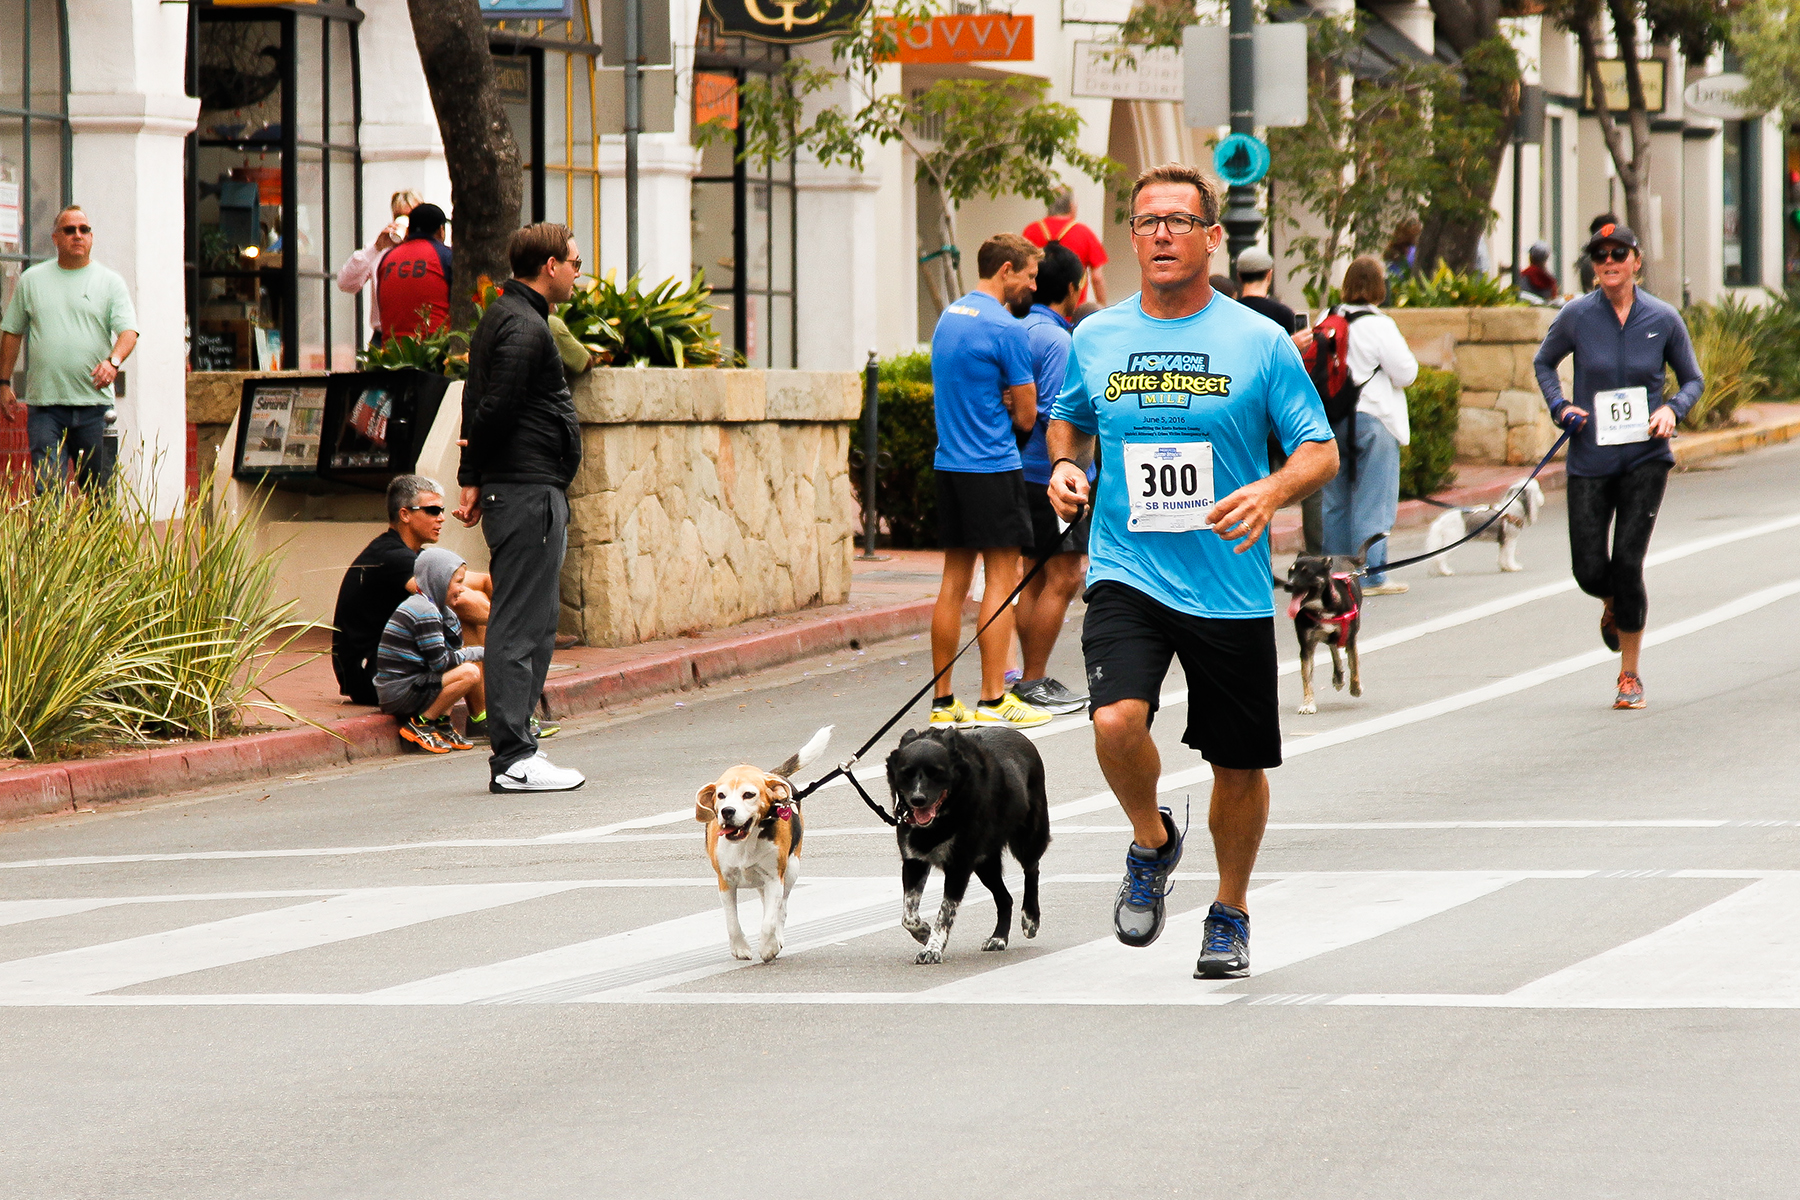 Brad Rochlitzer, 46, of Santa Barbara, and his dog finished the Dog Mile with a time of 7:50.